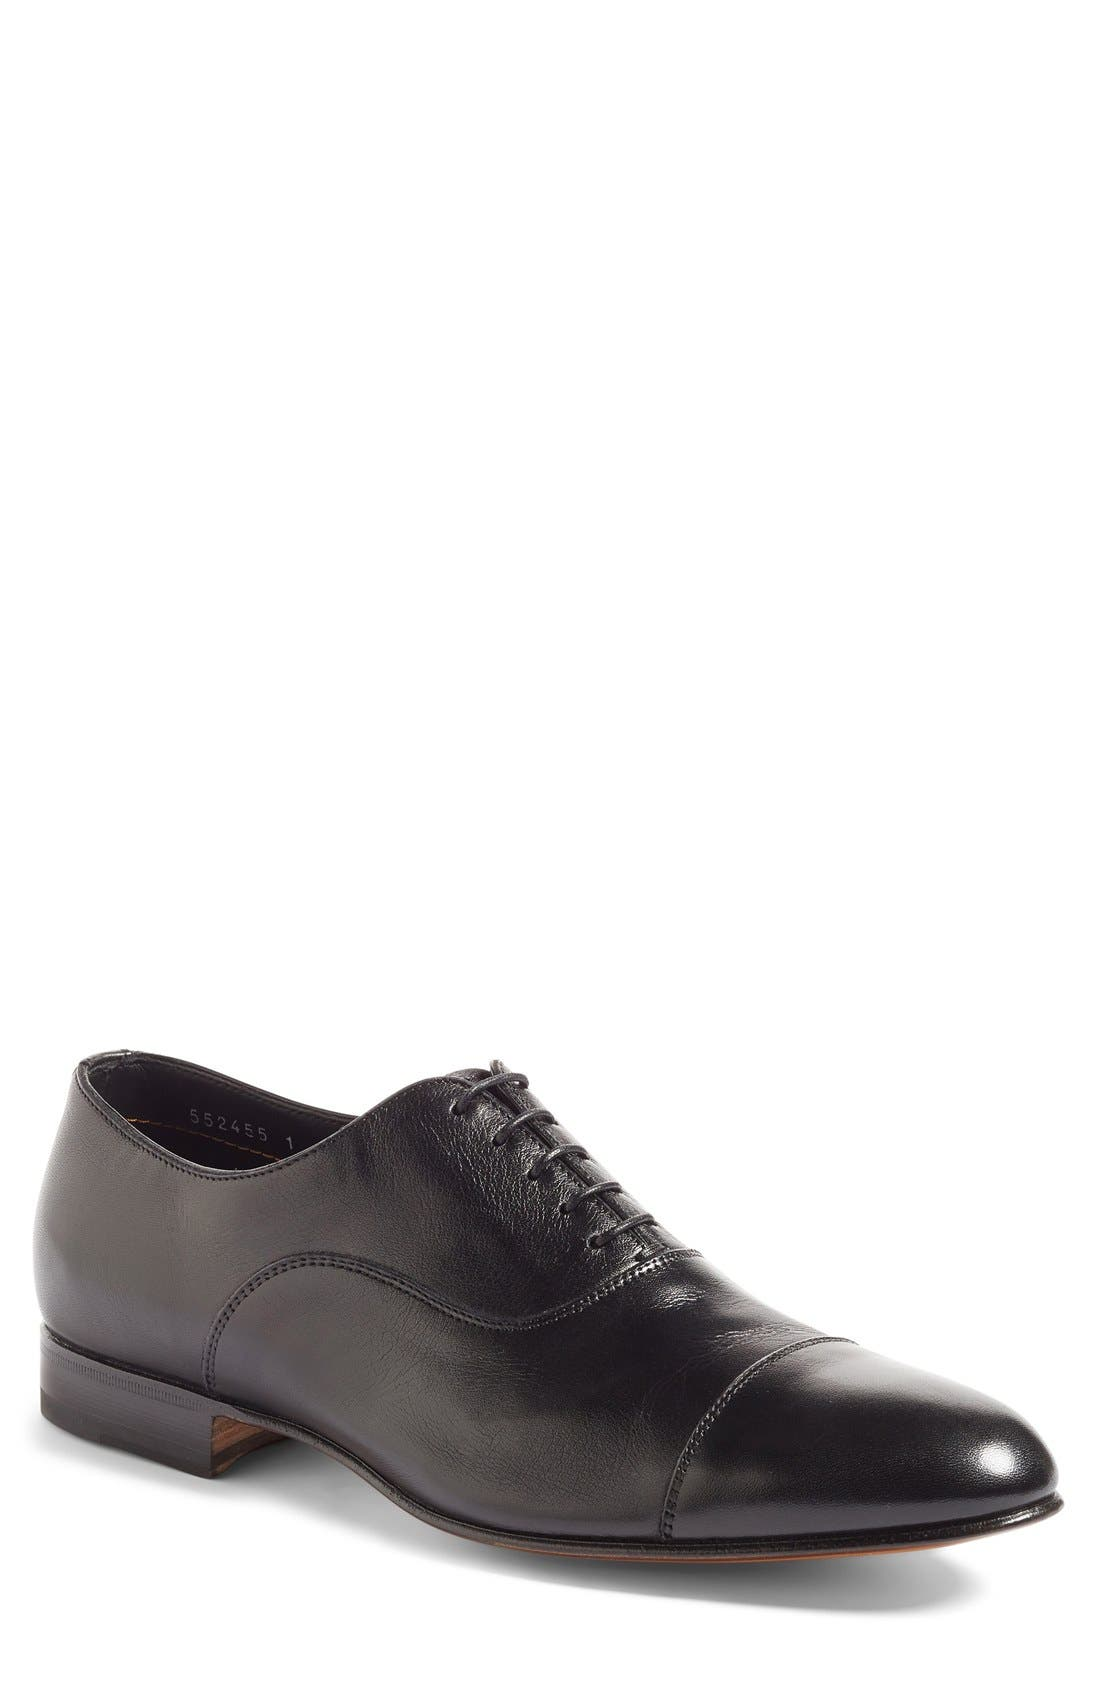 Darian Cap Toe Oxford,                         Main,                         color, BLACK LEATHER